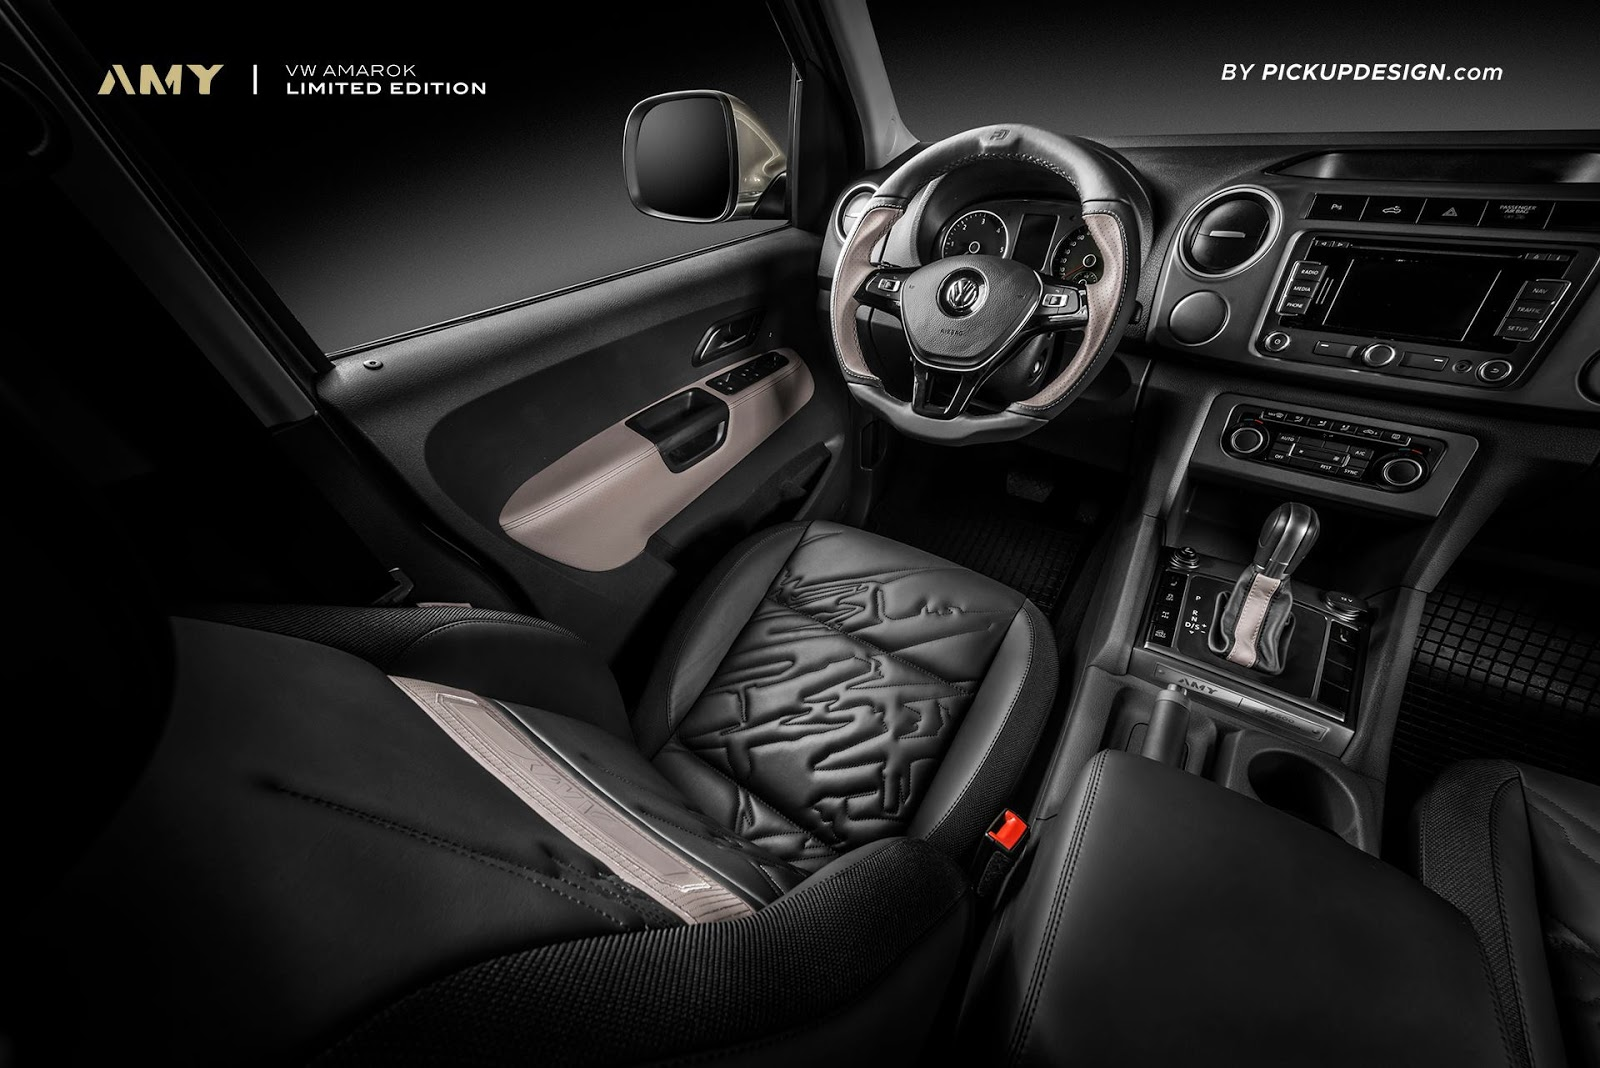 VW-Amarok-Pickup-Design-12